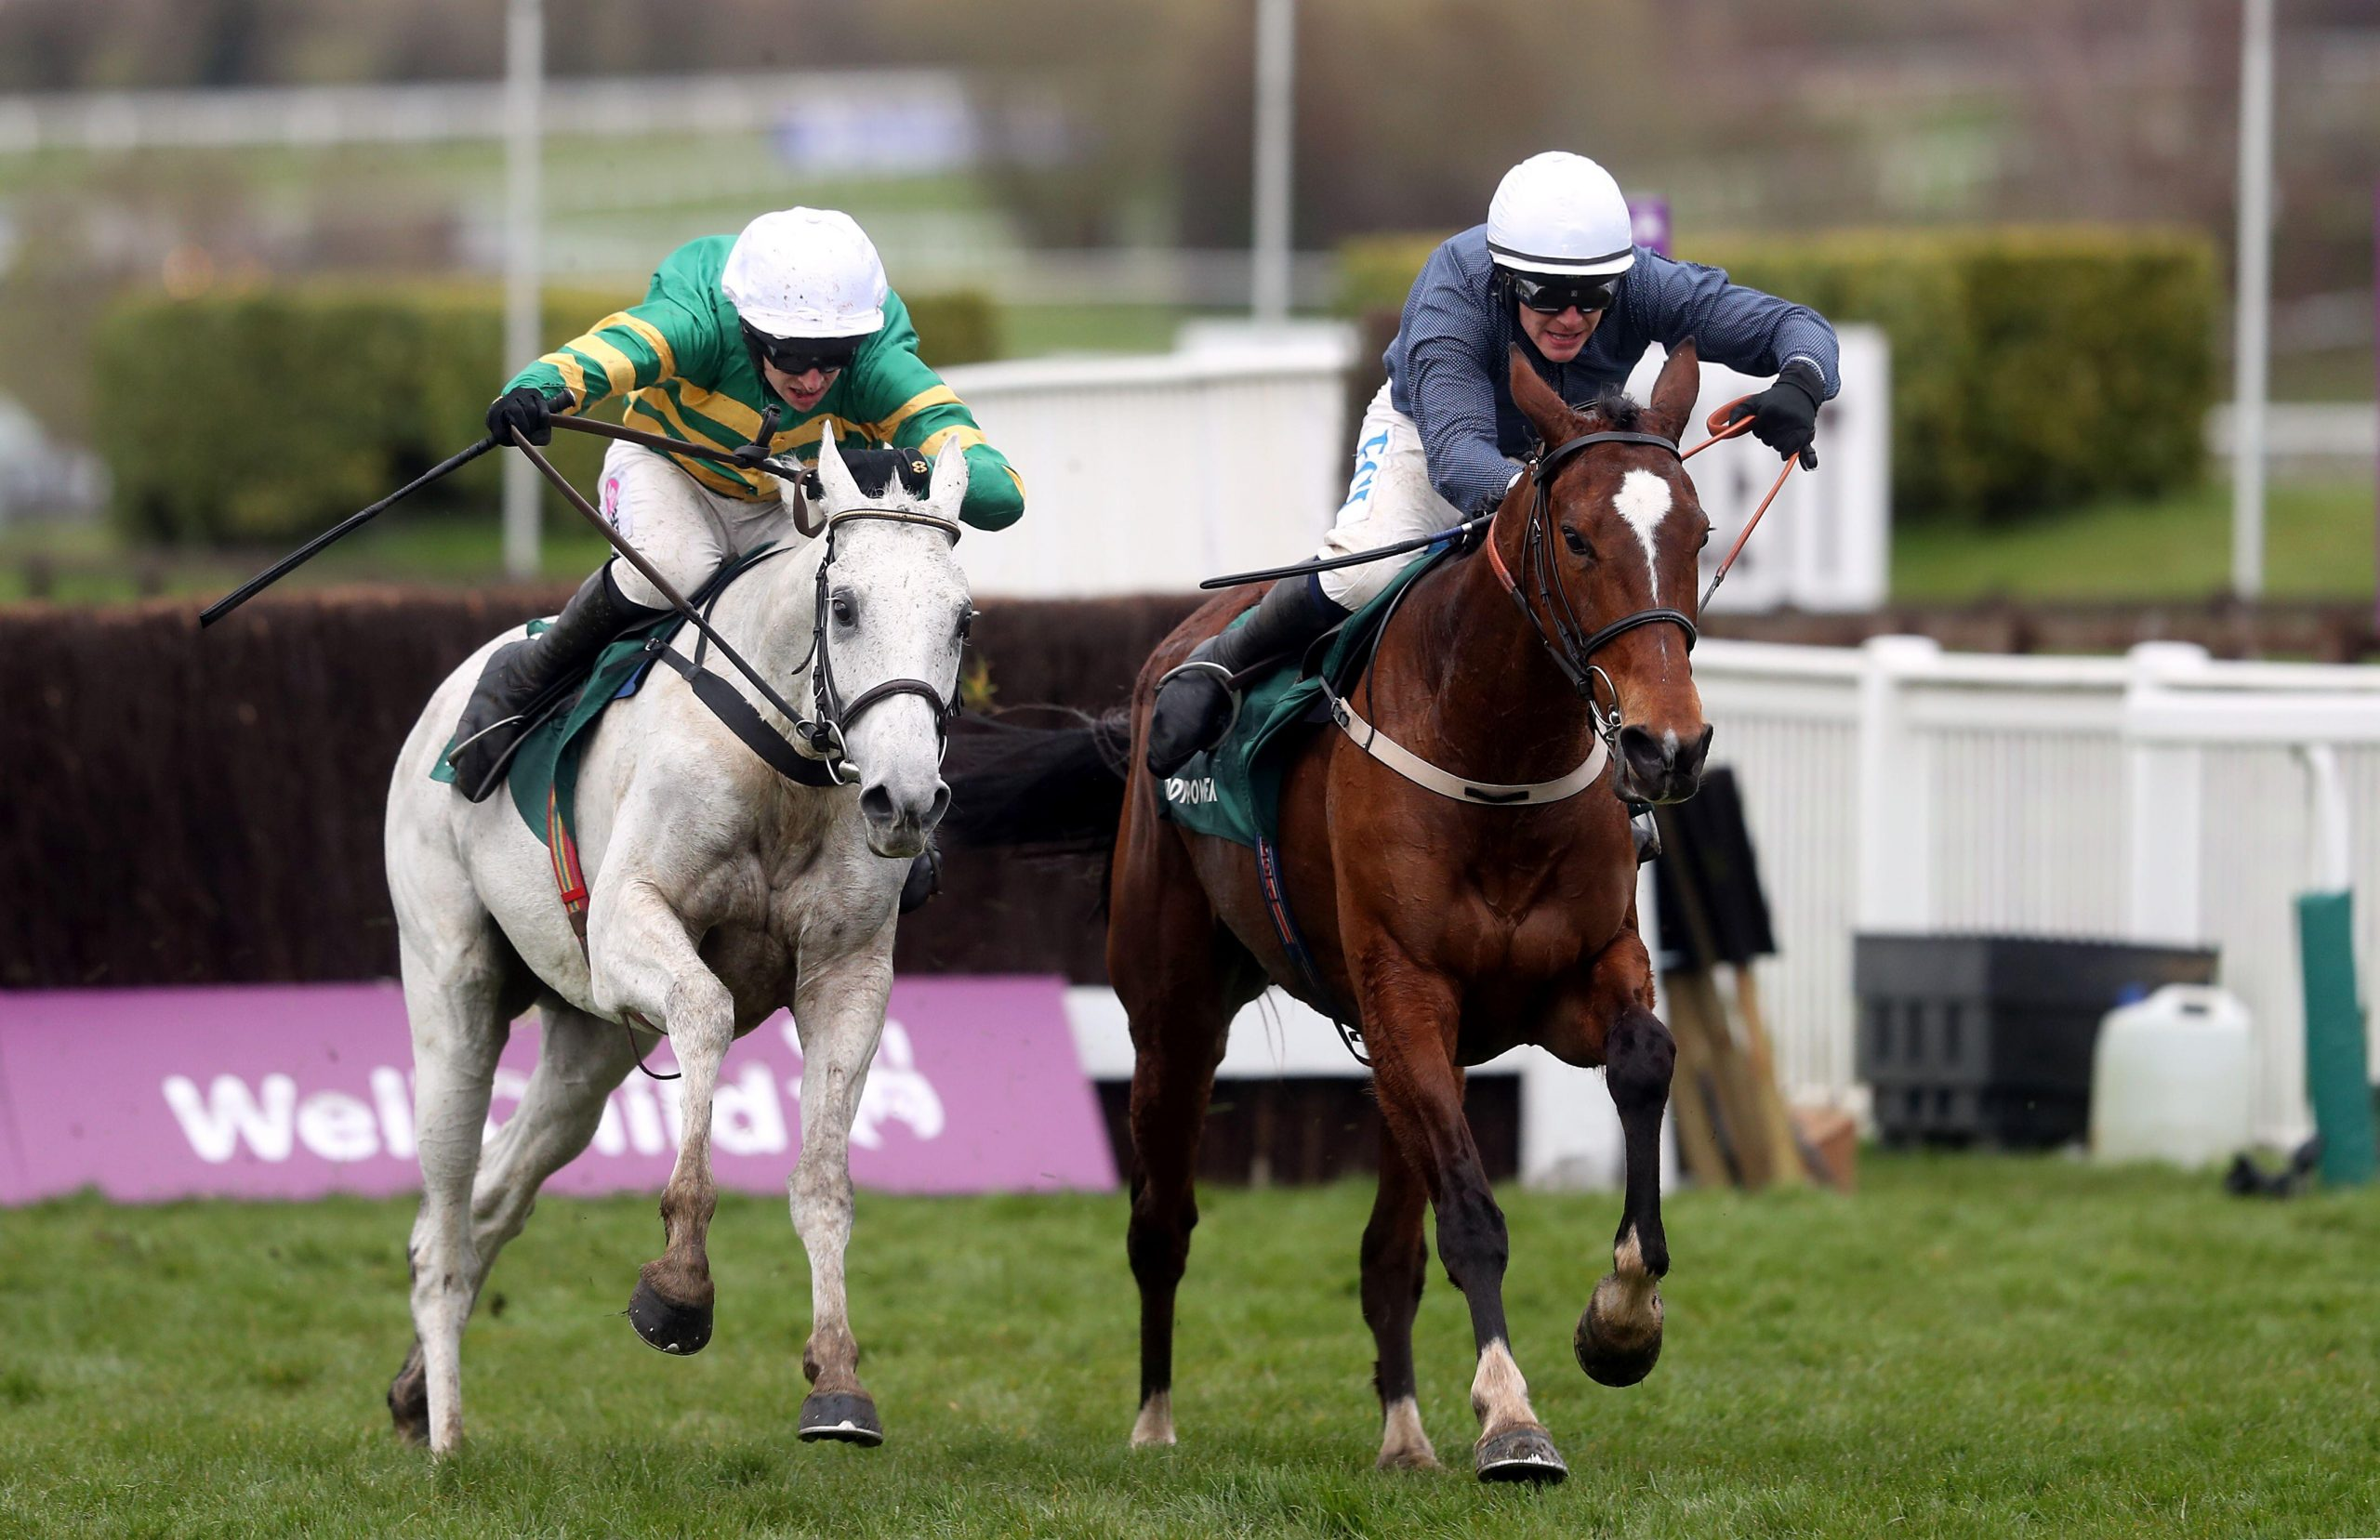 Colreevy ridden by jockey Paul Townend (right) on their way to winning the Mrs Paddy Power Mares' Chase ahead of Elimay and Mark Walsh (left) during day four of the Cheltenham Festival at Cheltenham Racecourse. Picture date: Friday March 19, 2021.